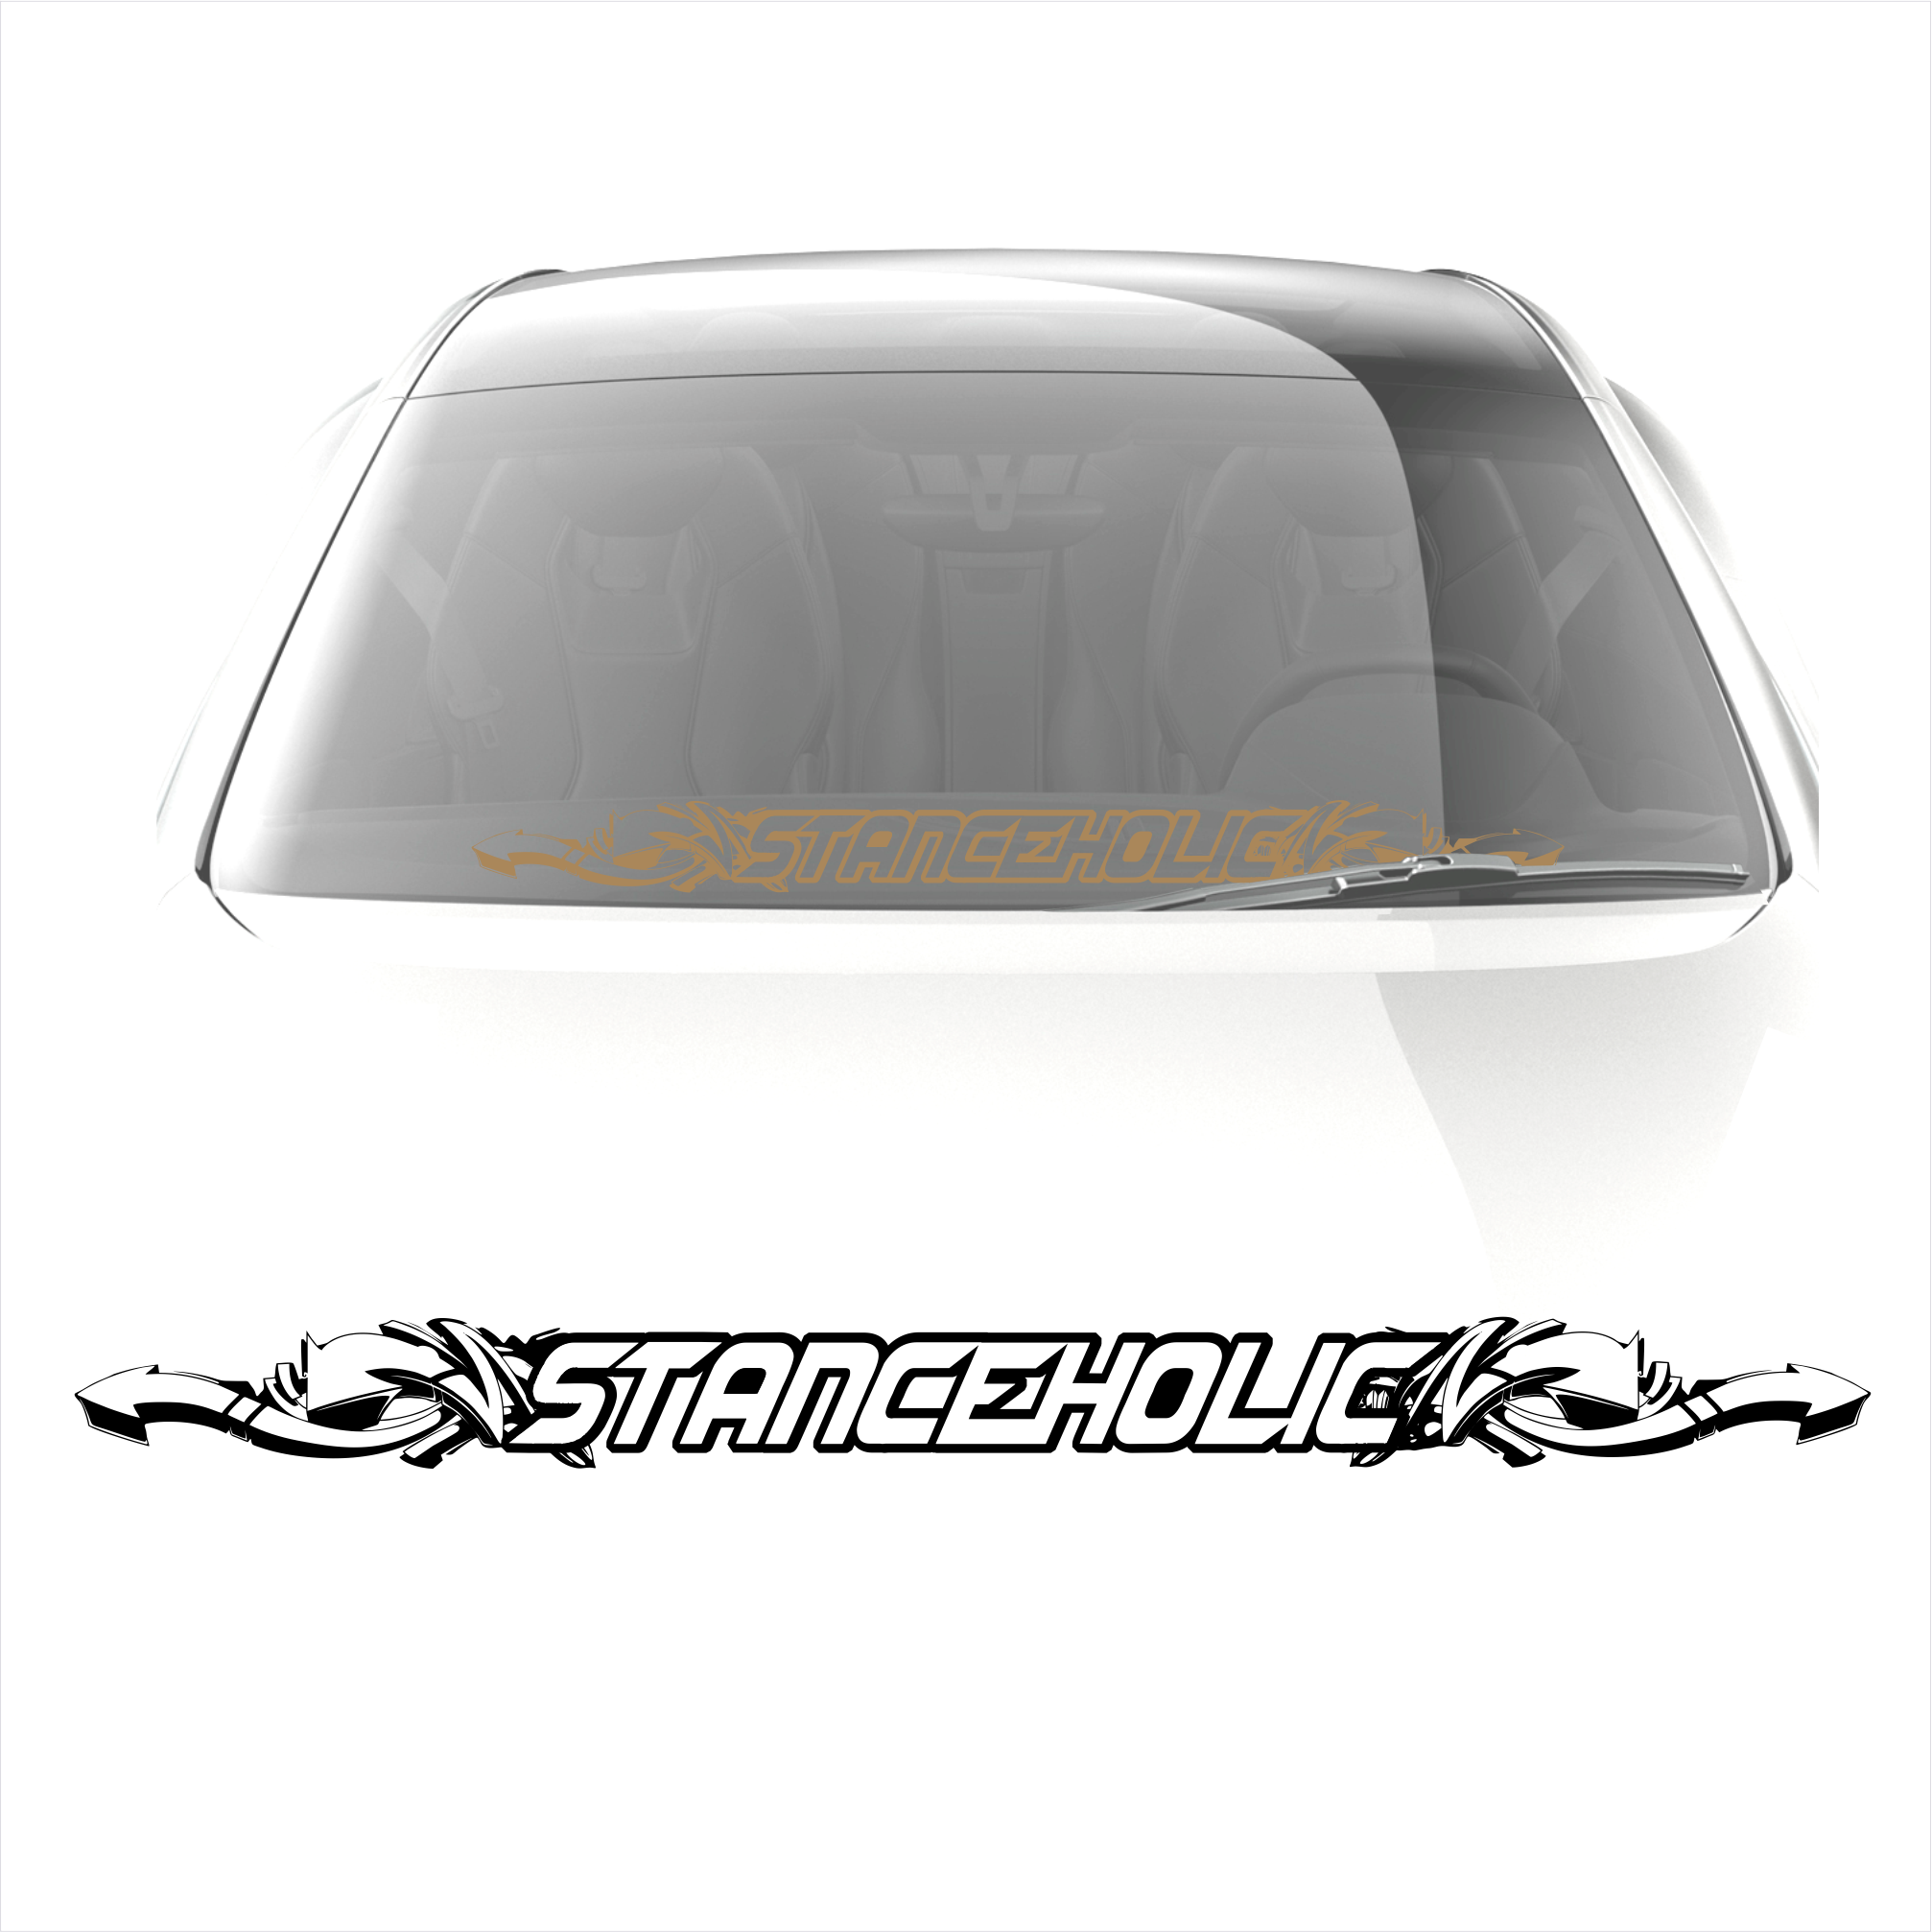 Stanceholic Sticker decal 2 - stickyarteu